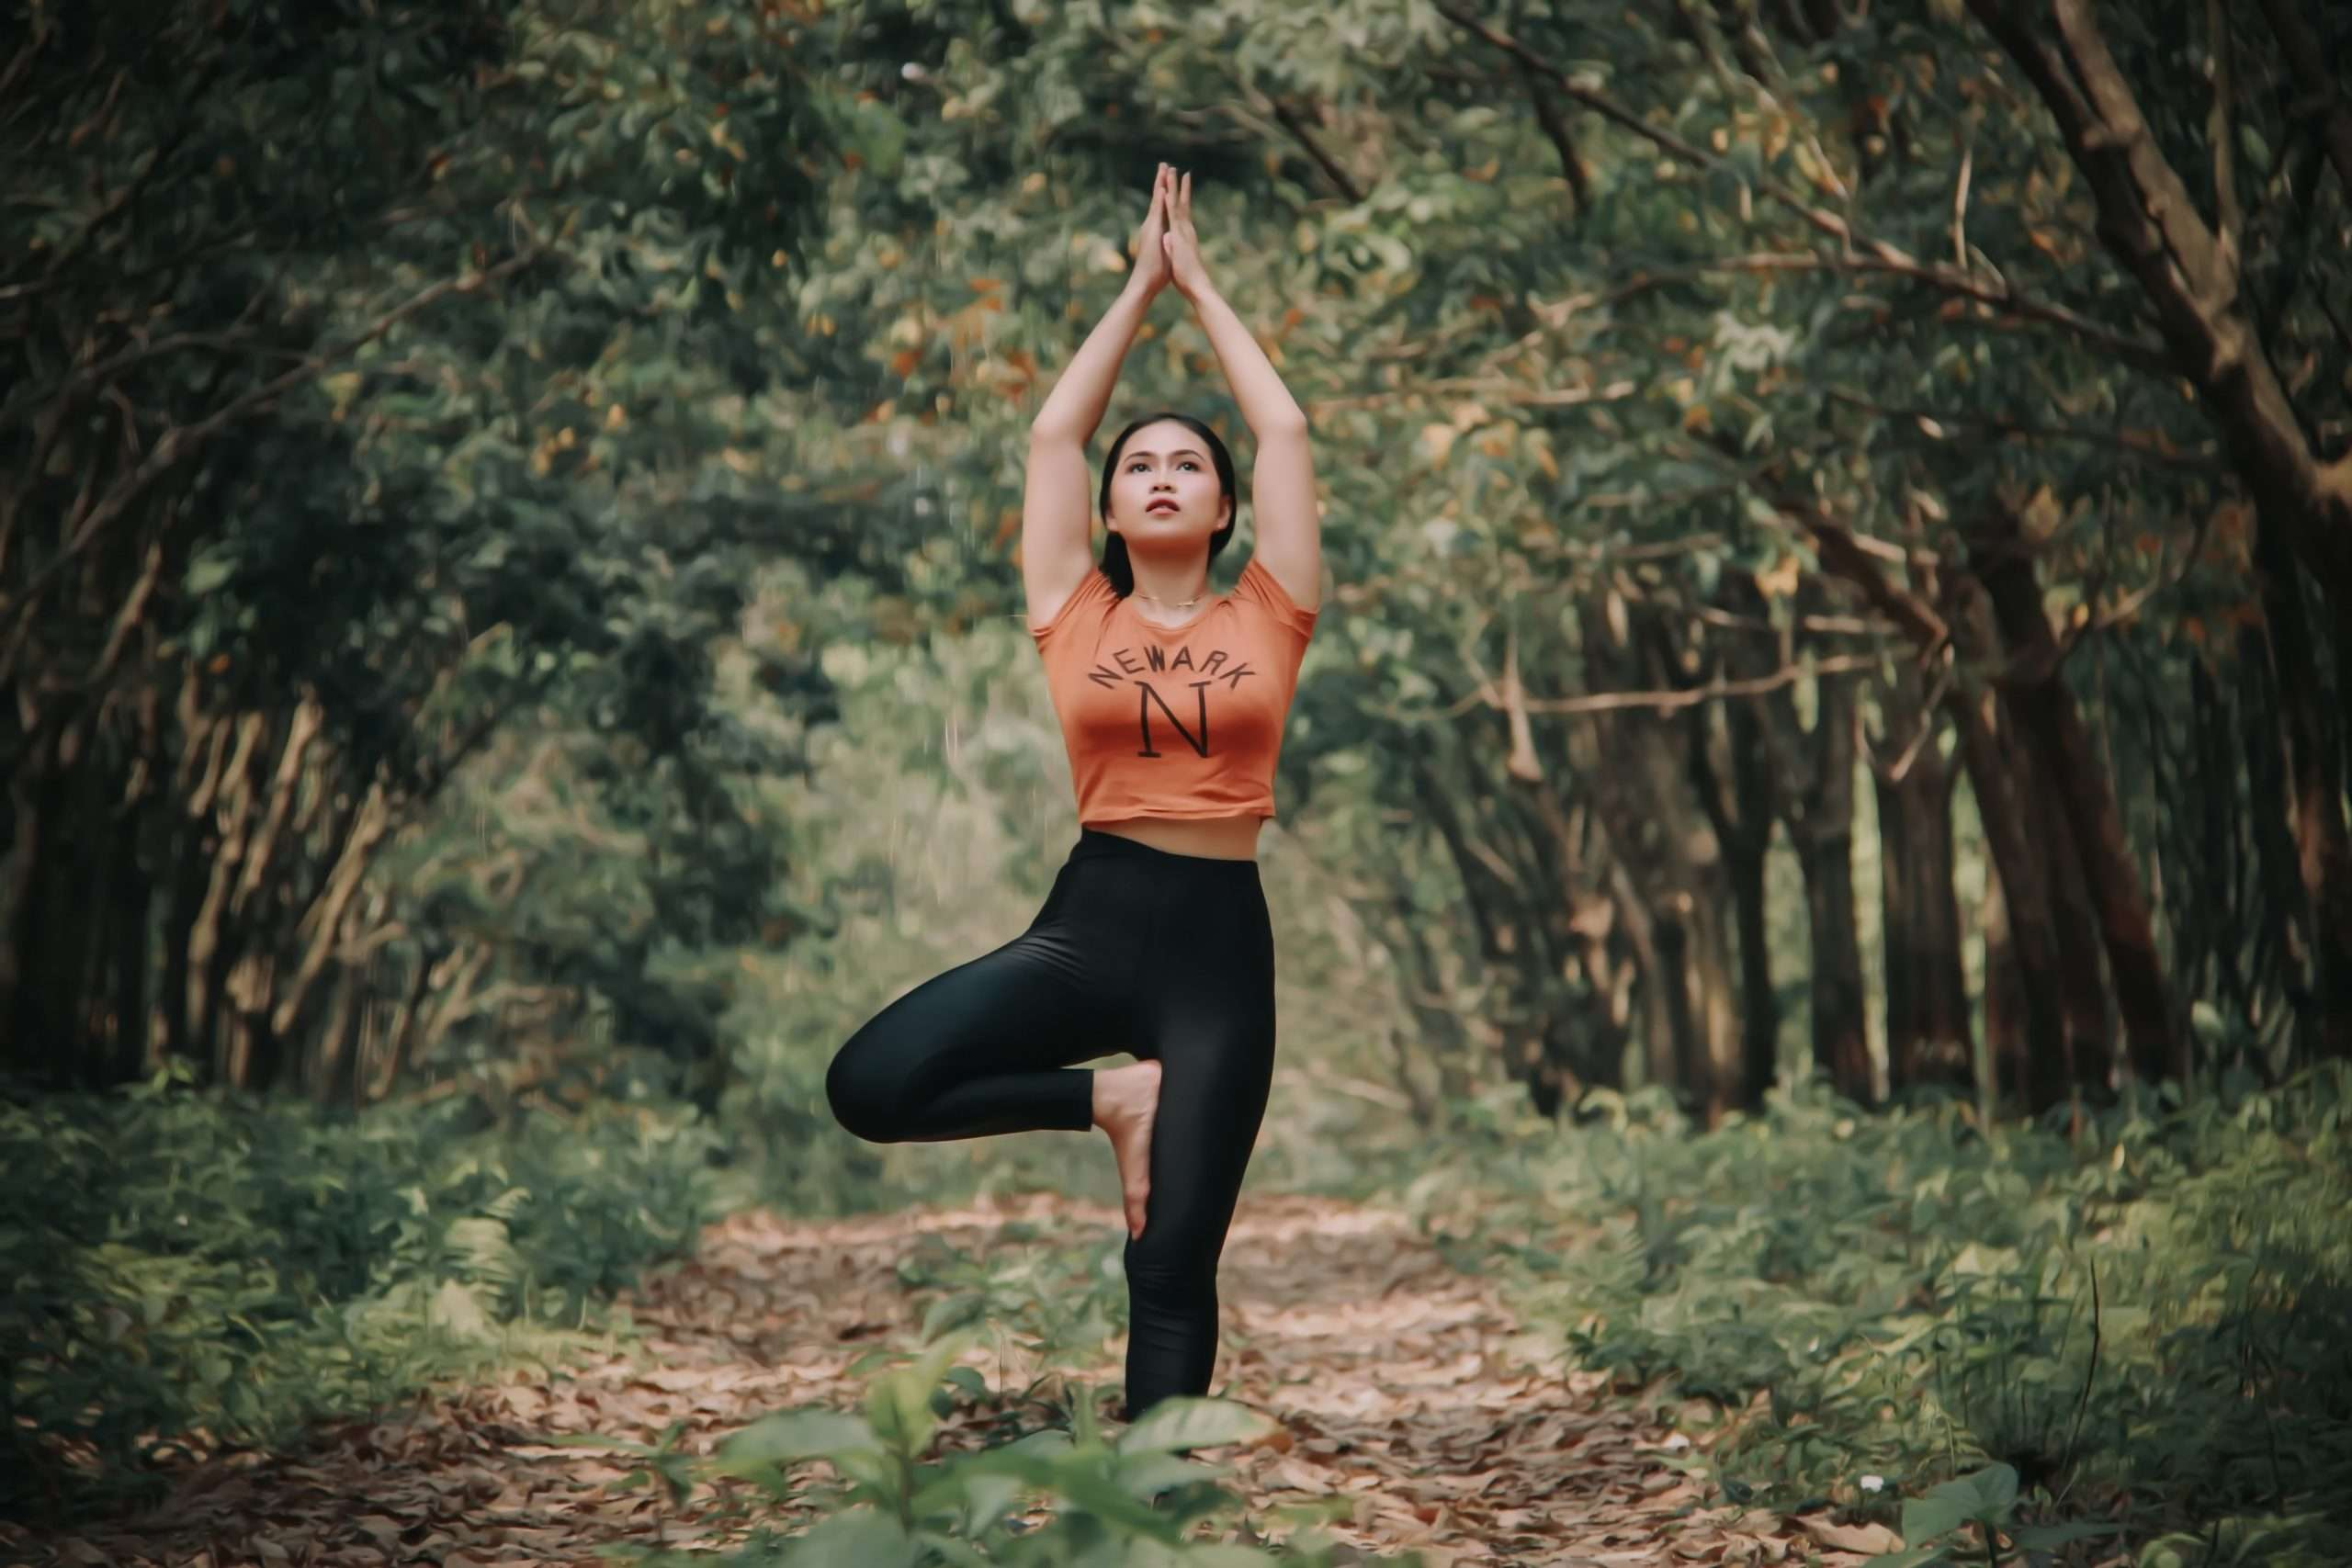 How to look after your mental health - yoga